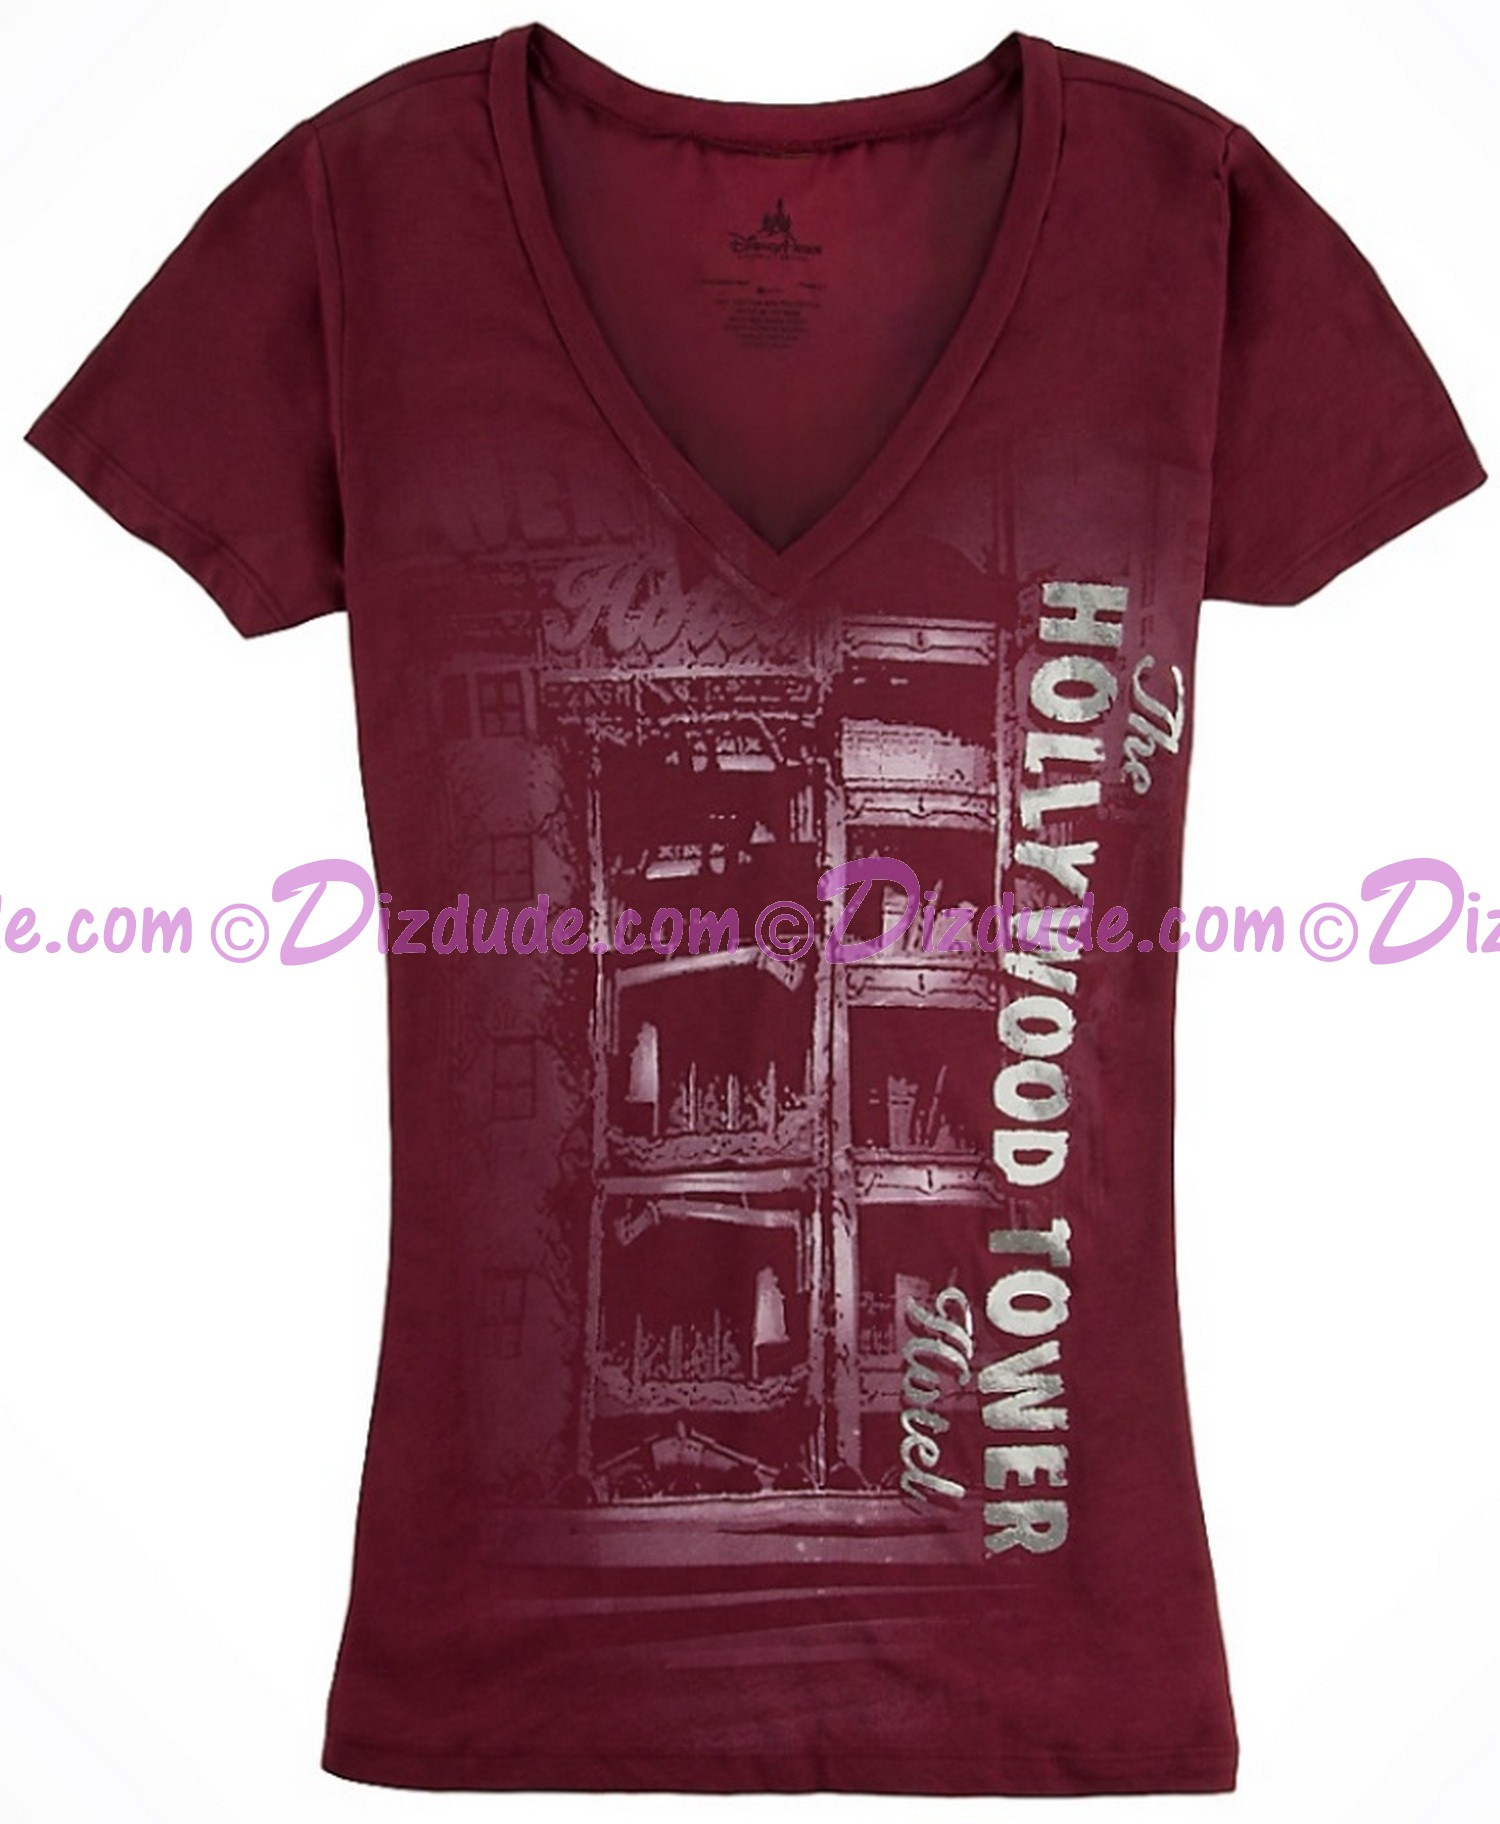 (SOLD OUT) The Hollywood Tower Hotel Womans Tshirt (Tee, Tshirt or T shirt) ~ Twilight Zone Tower of Terror ride